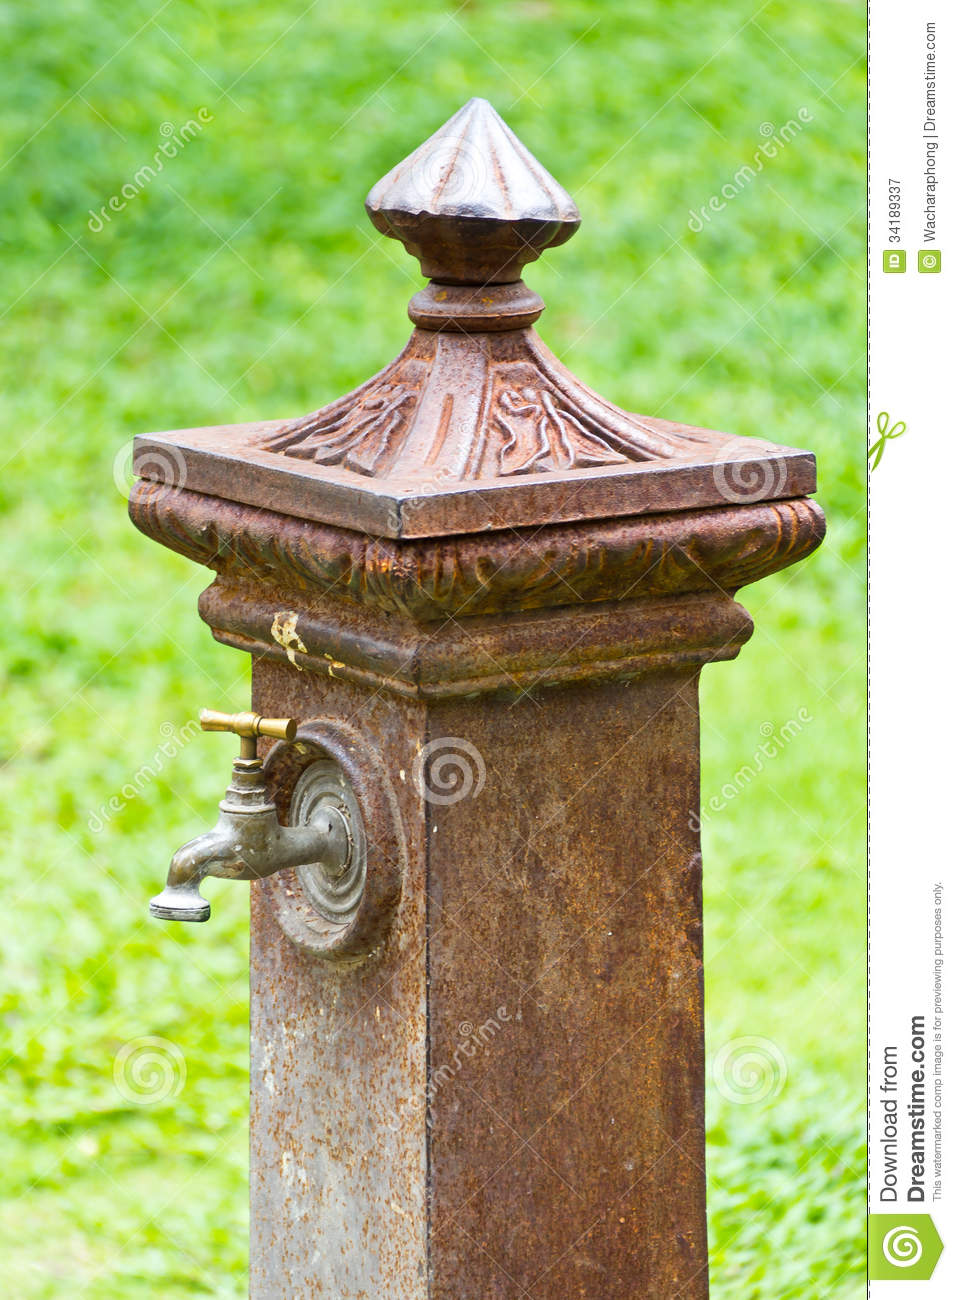 italian style faucet royalty free stock photography